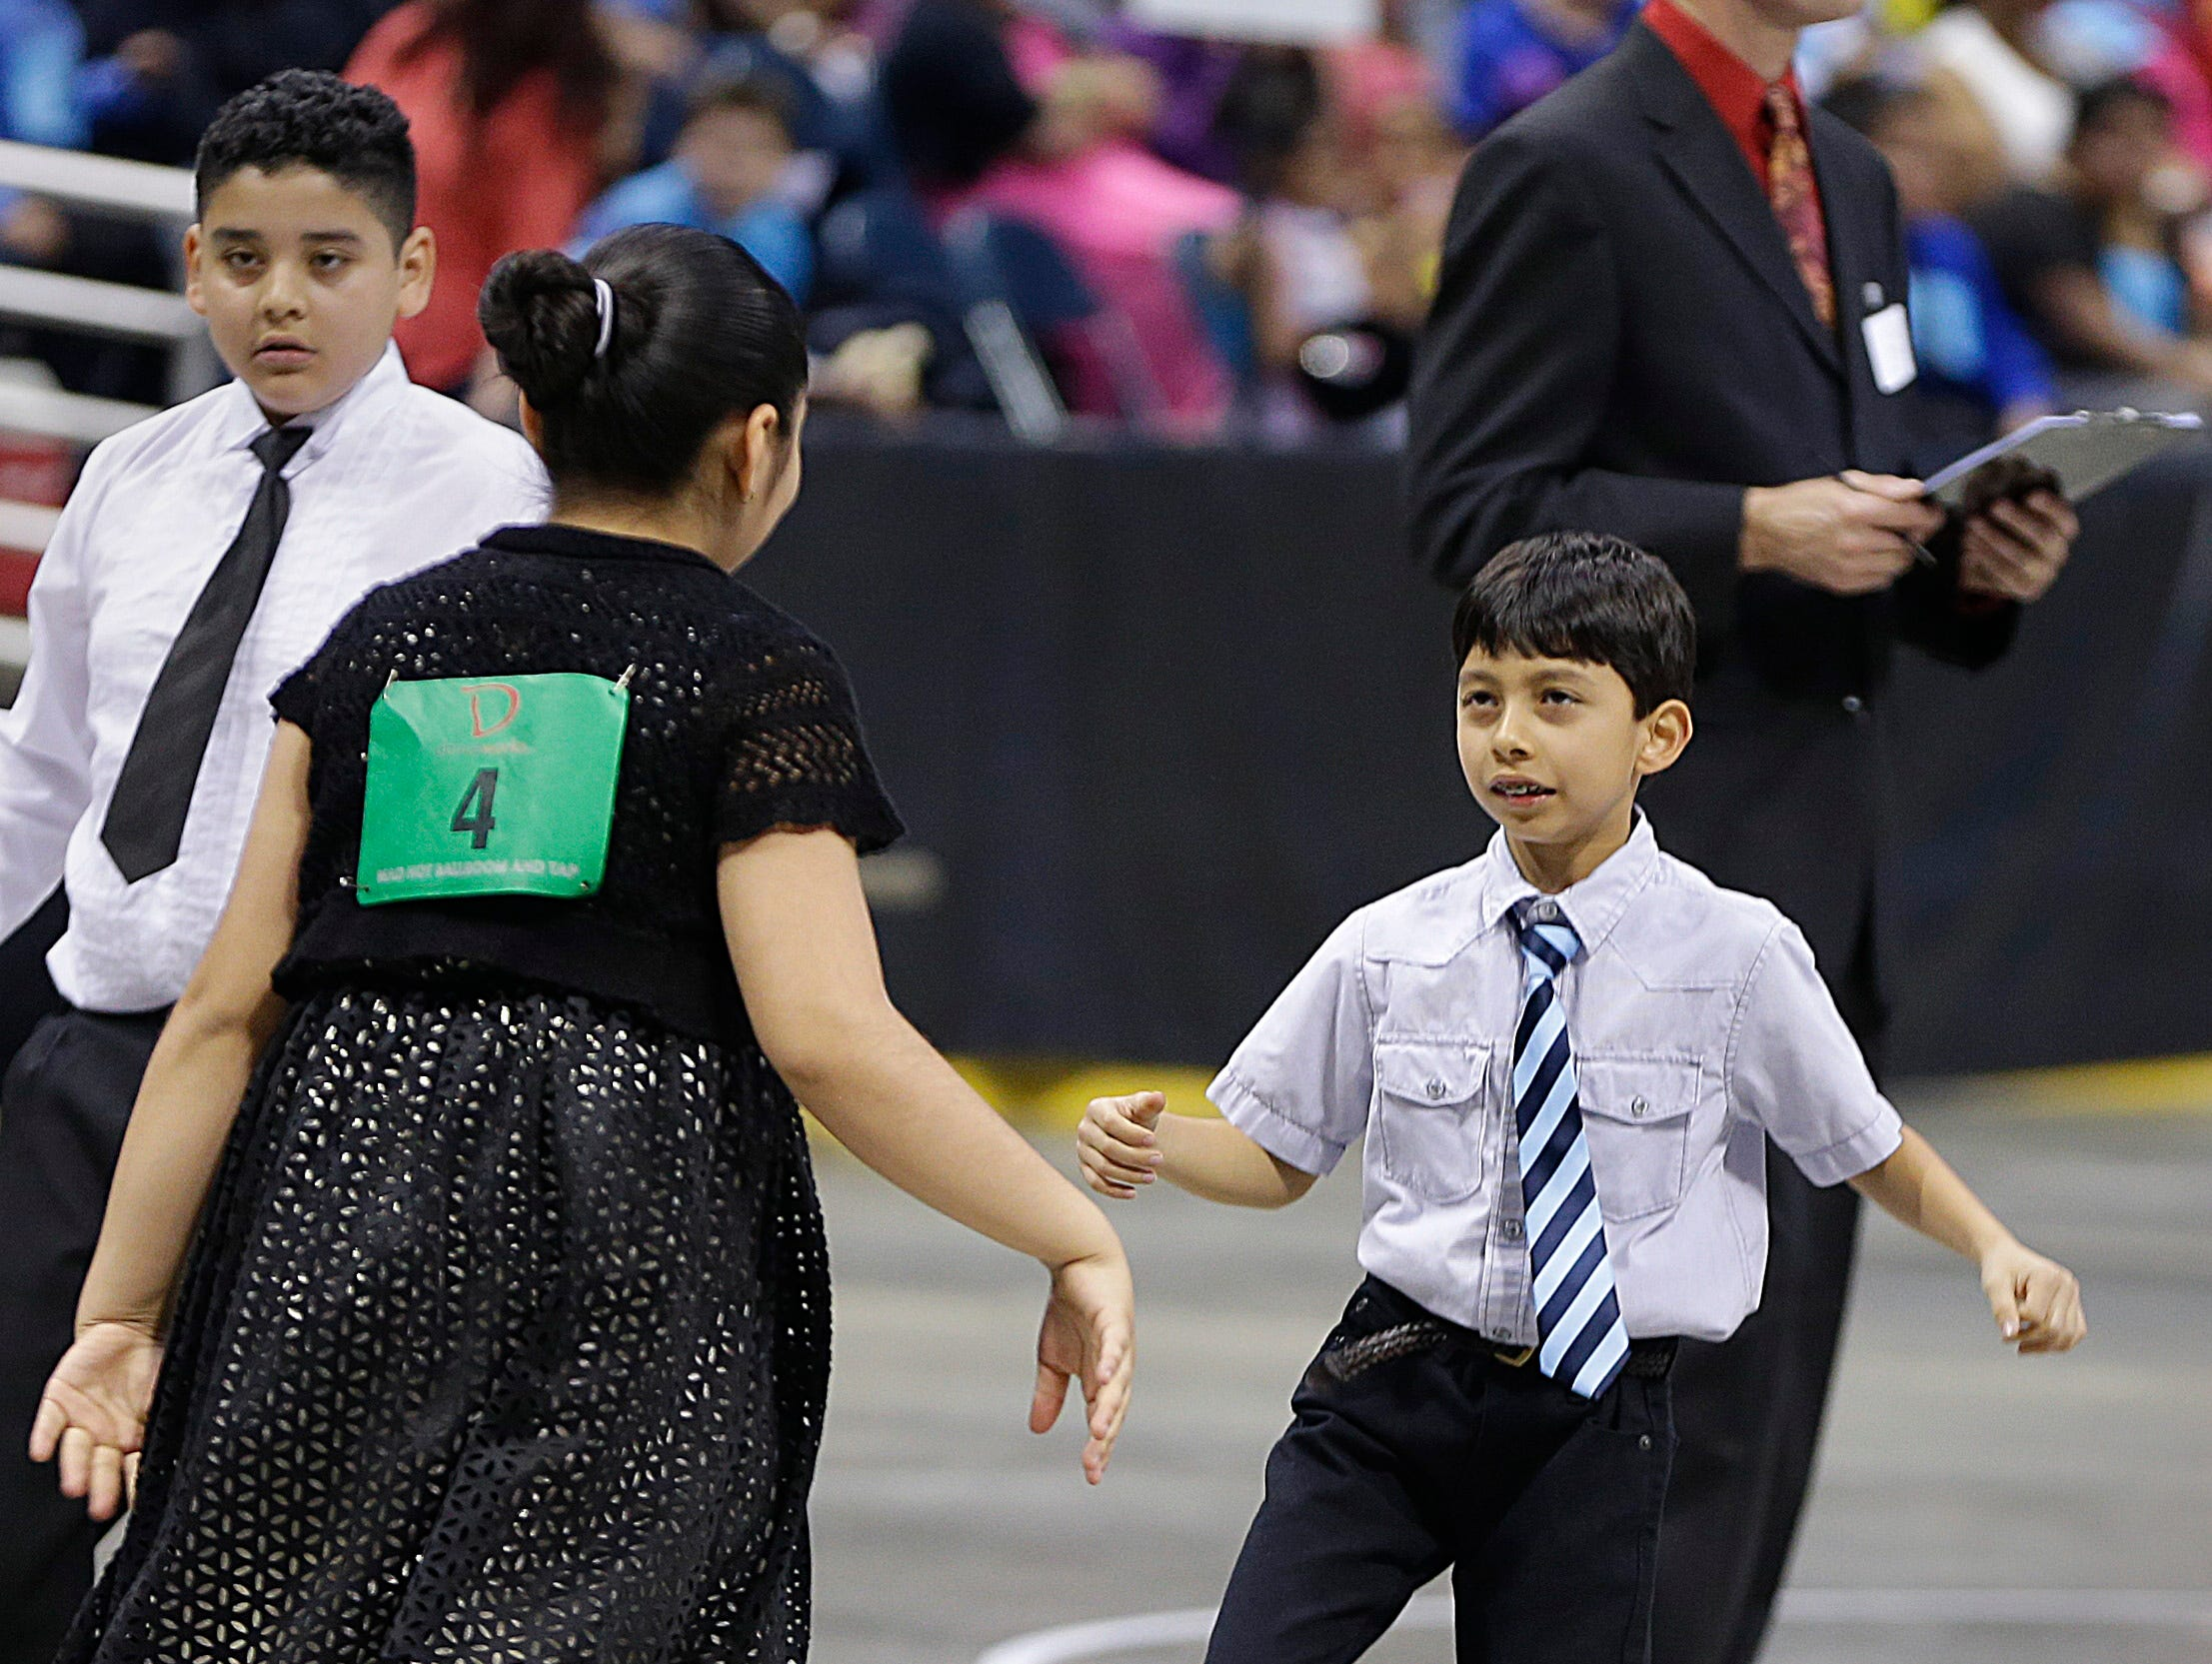 2016: Valeria Portugal, 10, left, and Aztlan Hernandez, 10 from Vieau School, dance in the annual Mad Hot Ballroom and Tap competition at the BMO Harris Bradley Center.